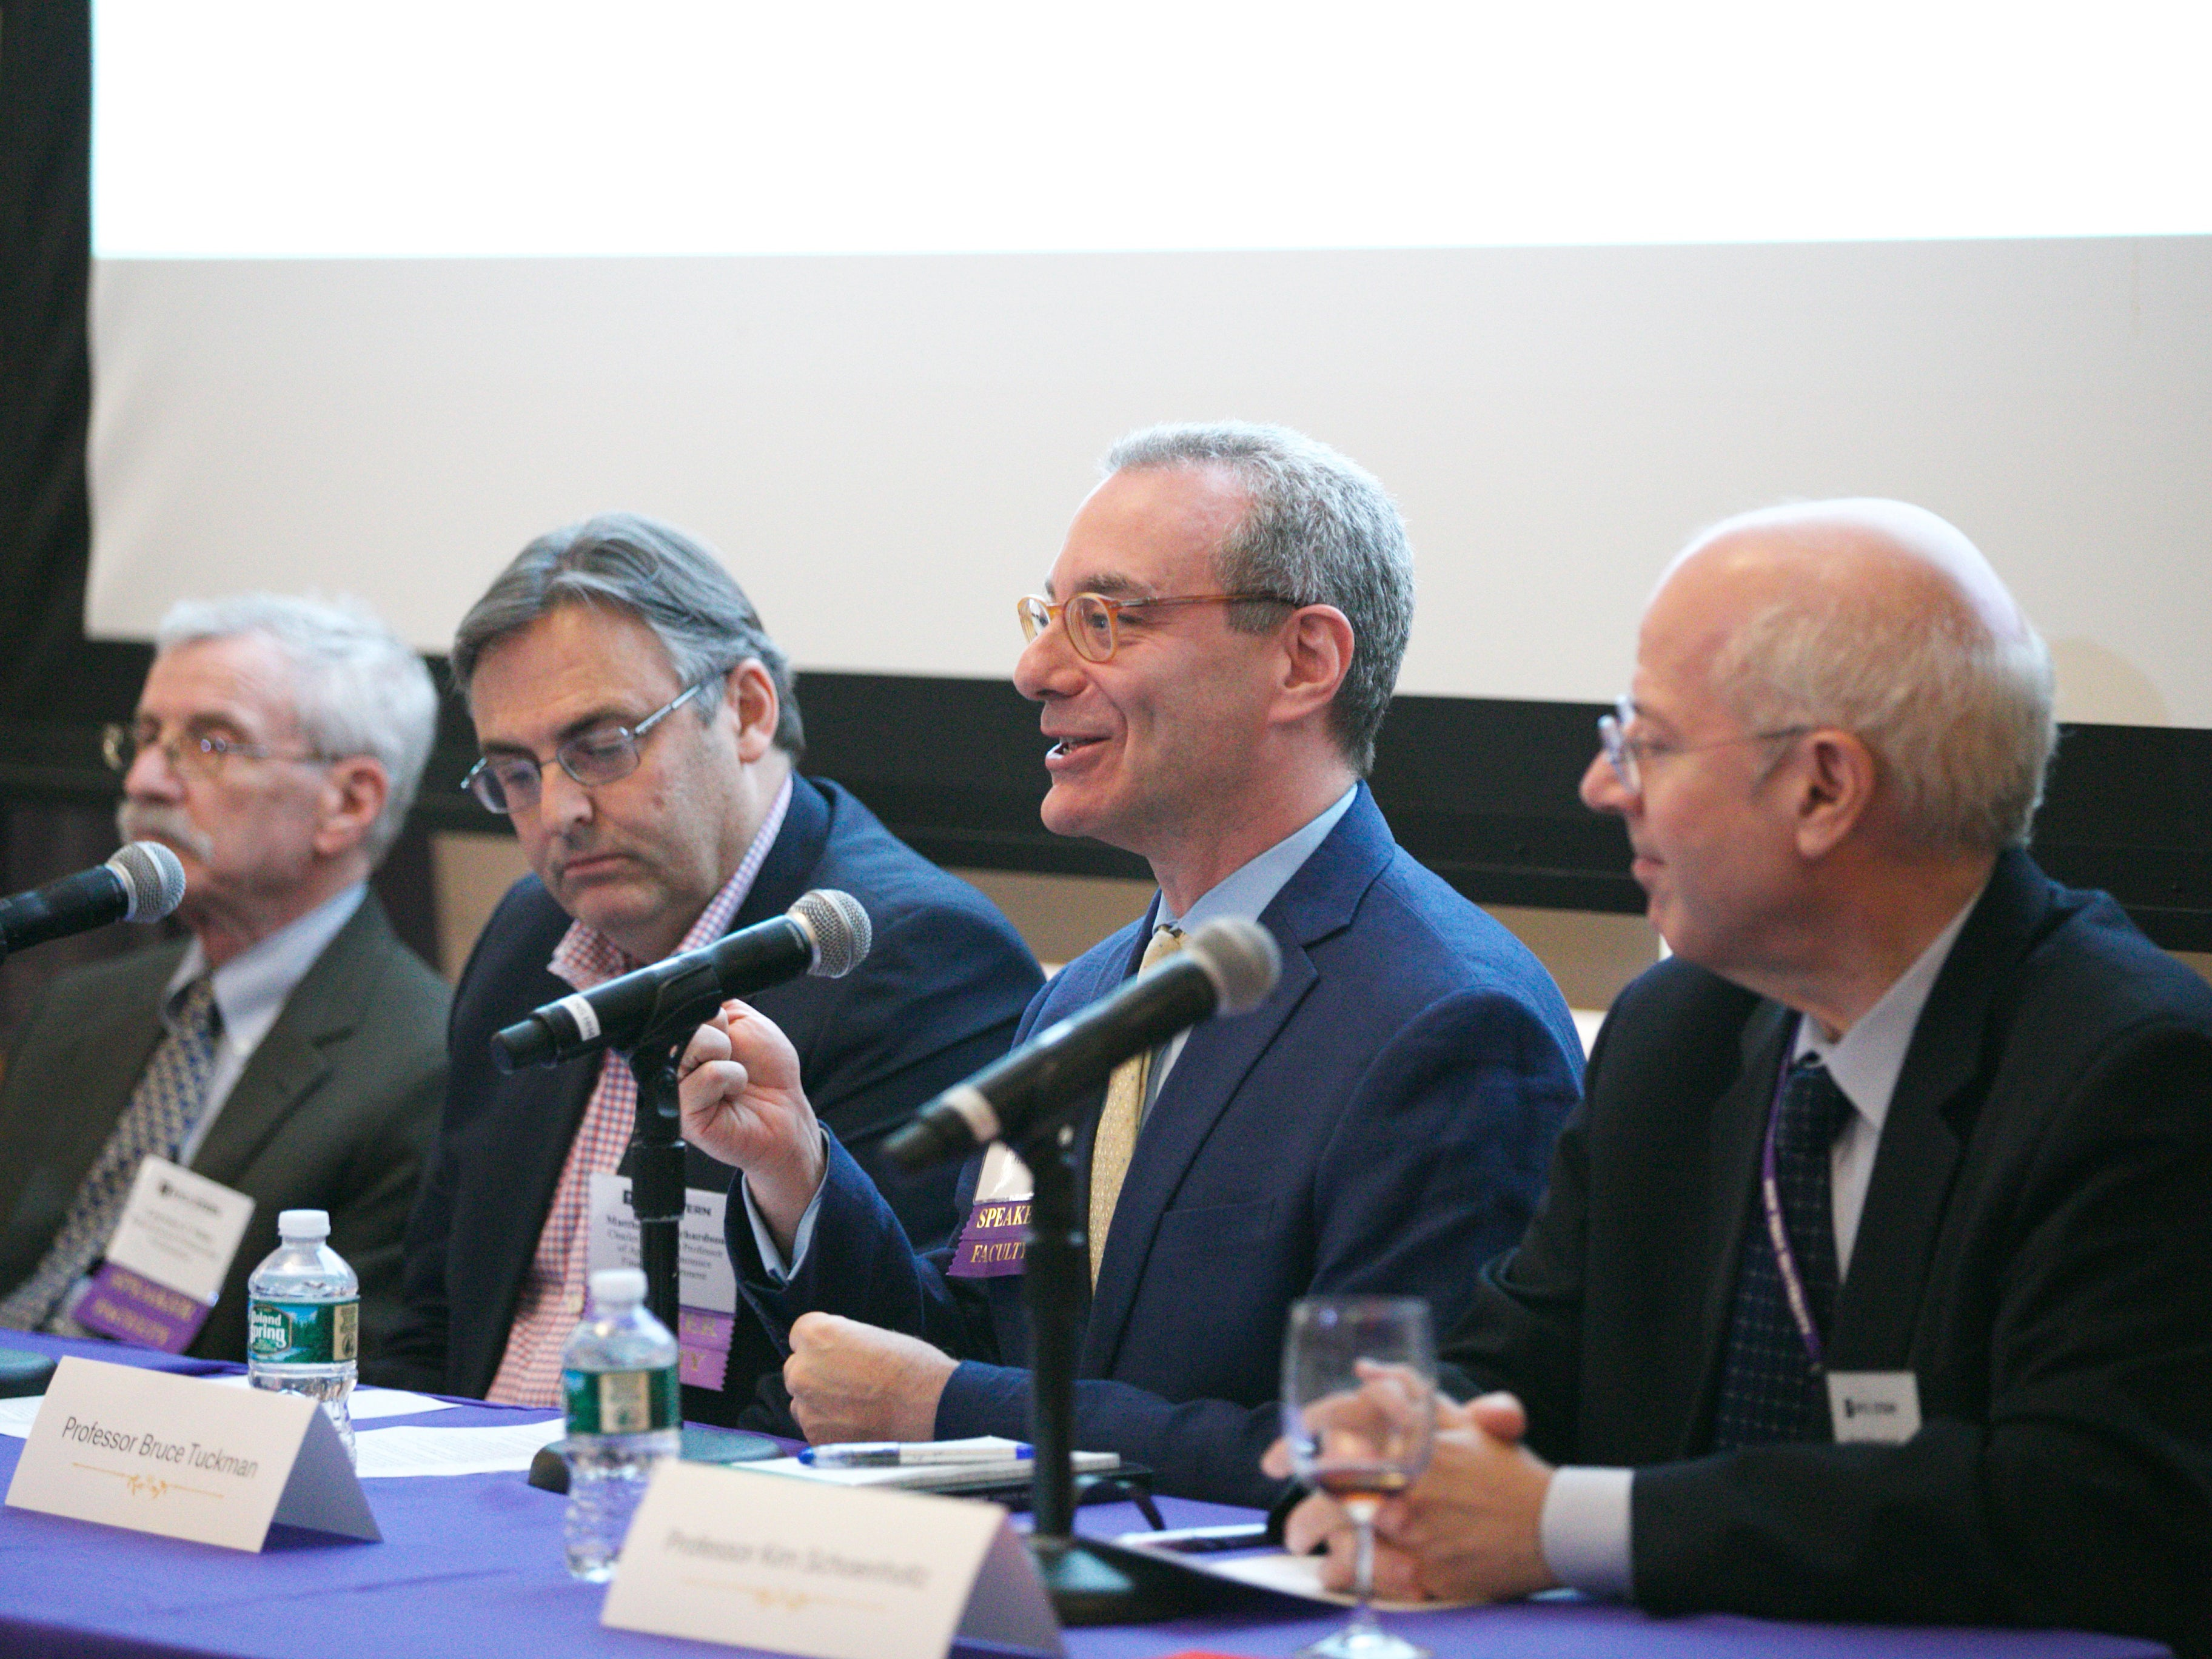 Panel from a book event at Stern on regulation